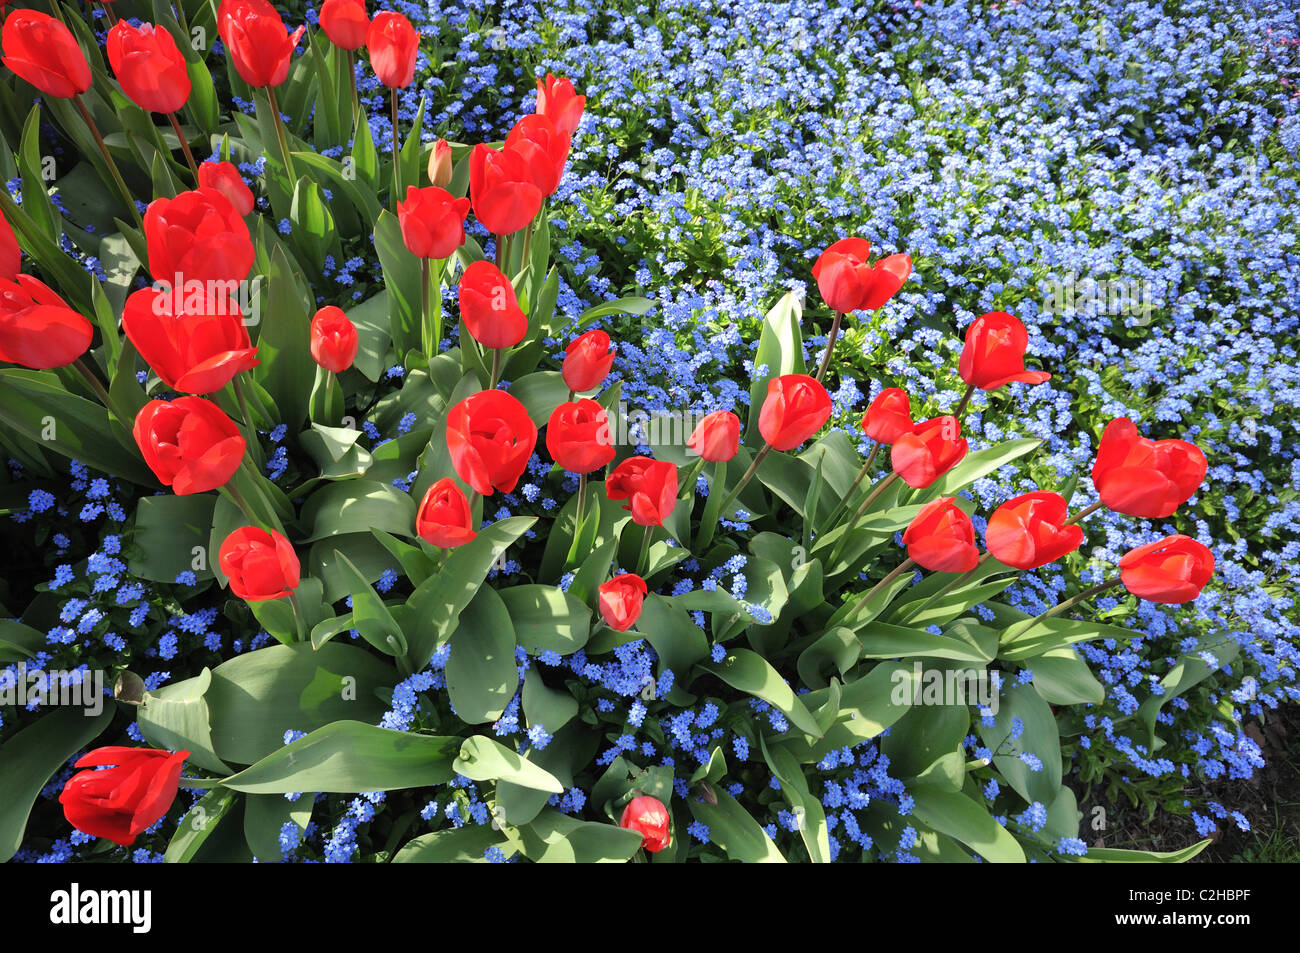 Name of red flowers tulip beautiful red pansies look at the great red tulips latin name tulipa and tiny blue flowers forget me not latin name myosotis izmirmasajfo Images